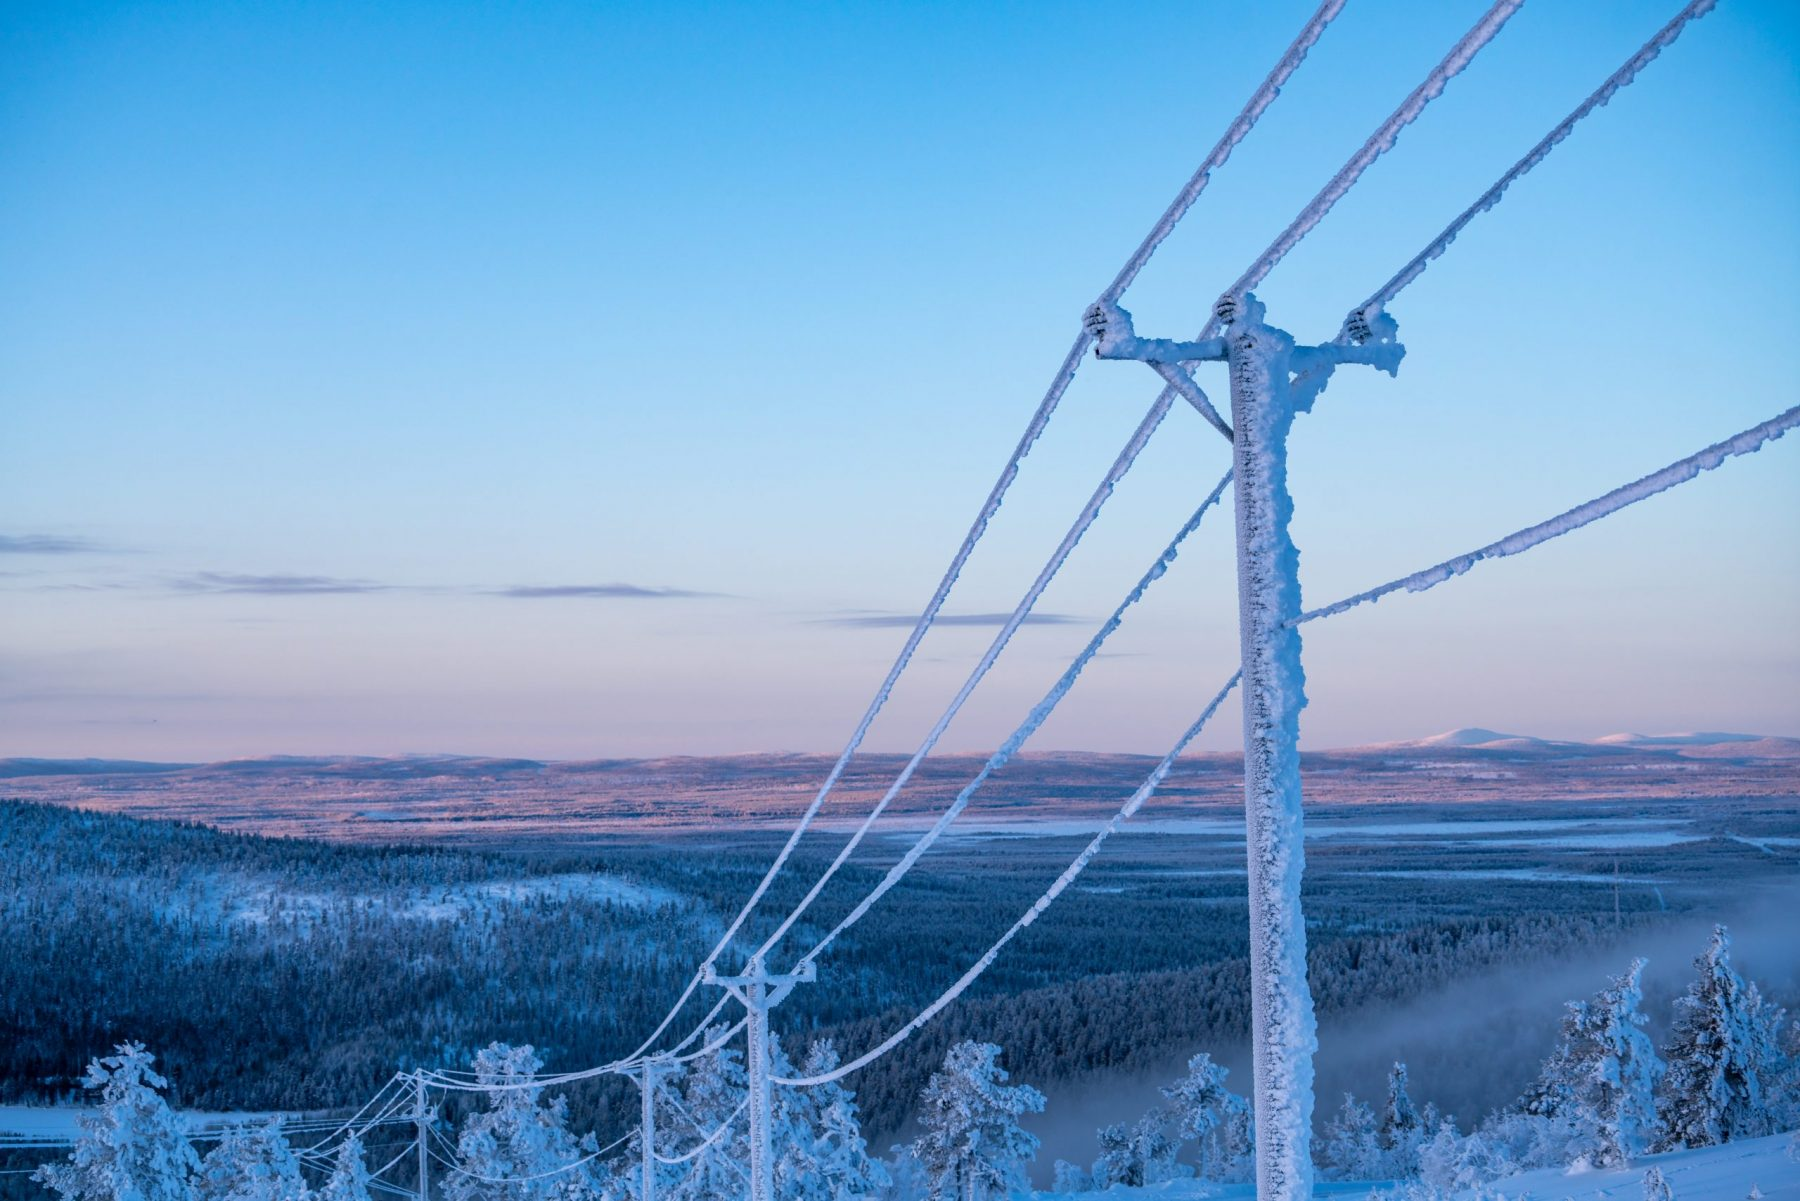 Power lines covered in snow and frost in a wintry background